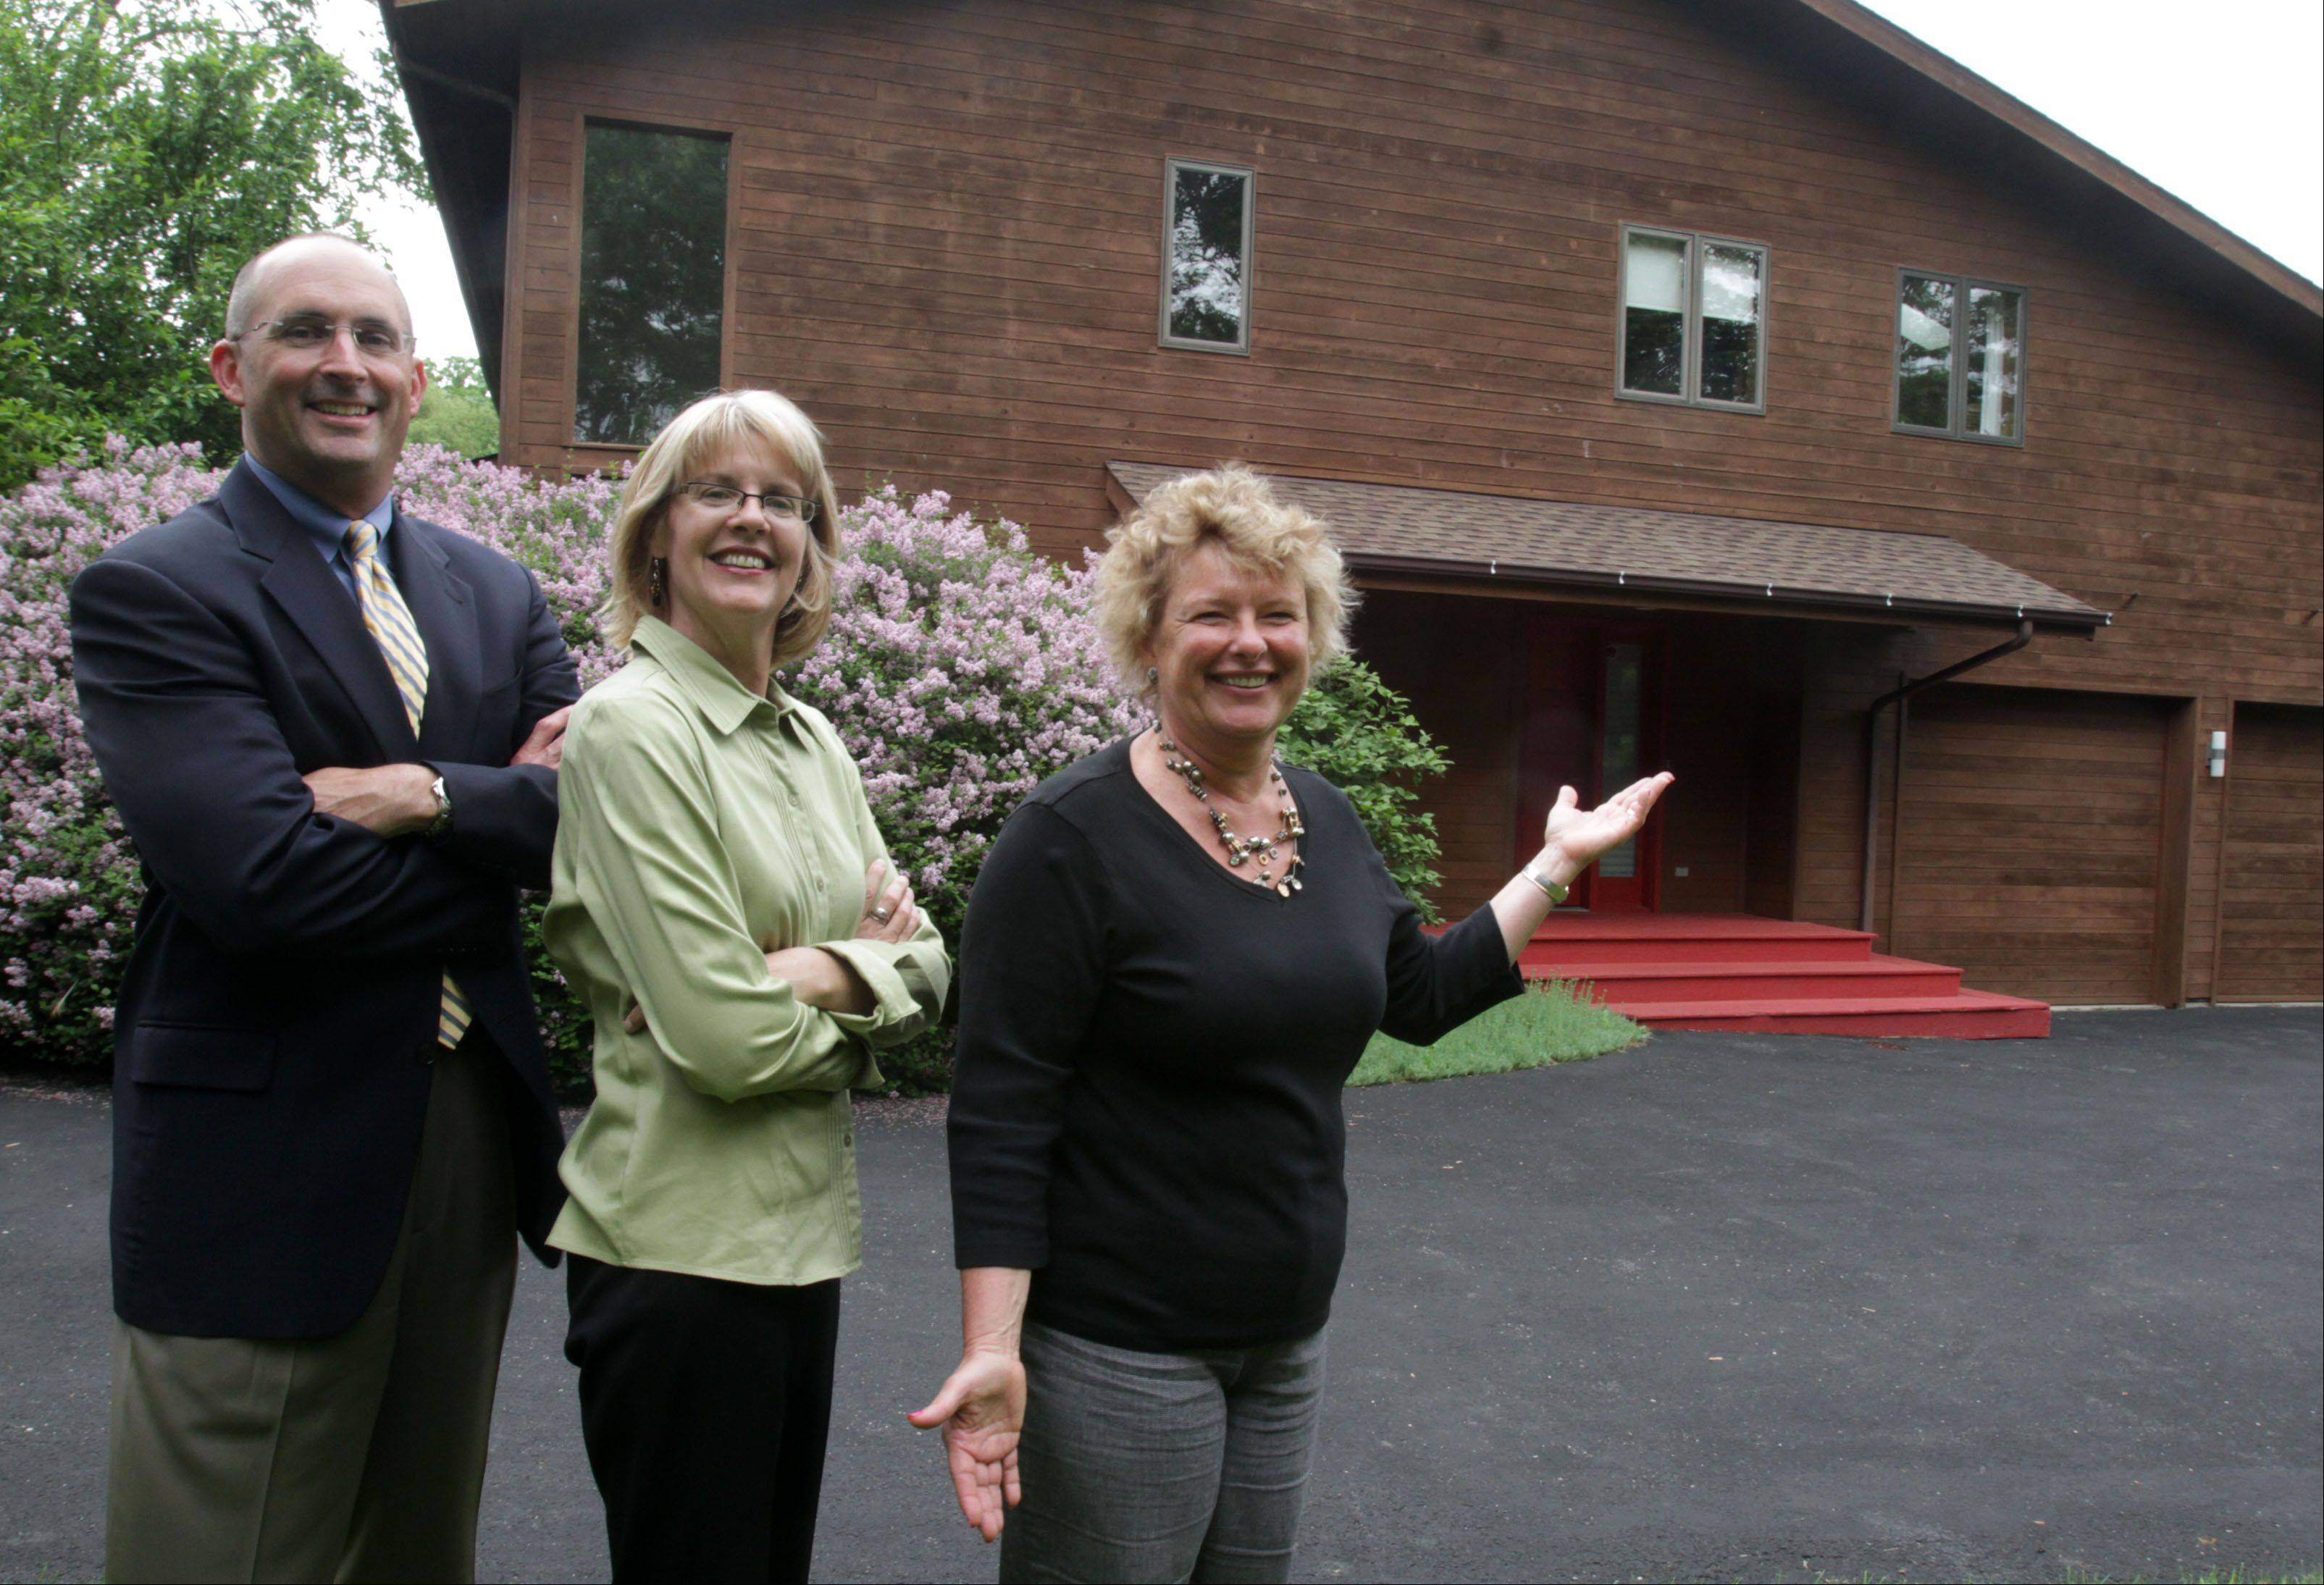 George LeClaire/gleclaire@dailyherald.com � Realtor Mark Munro, left to right, Mary Loughman, the stager, and former homeowner Irisa Putnins outside of Putnins former home in Deer Park that they improved and sold in one day last year. Here on May 31, 2013.